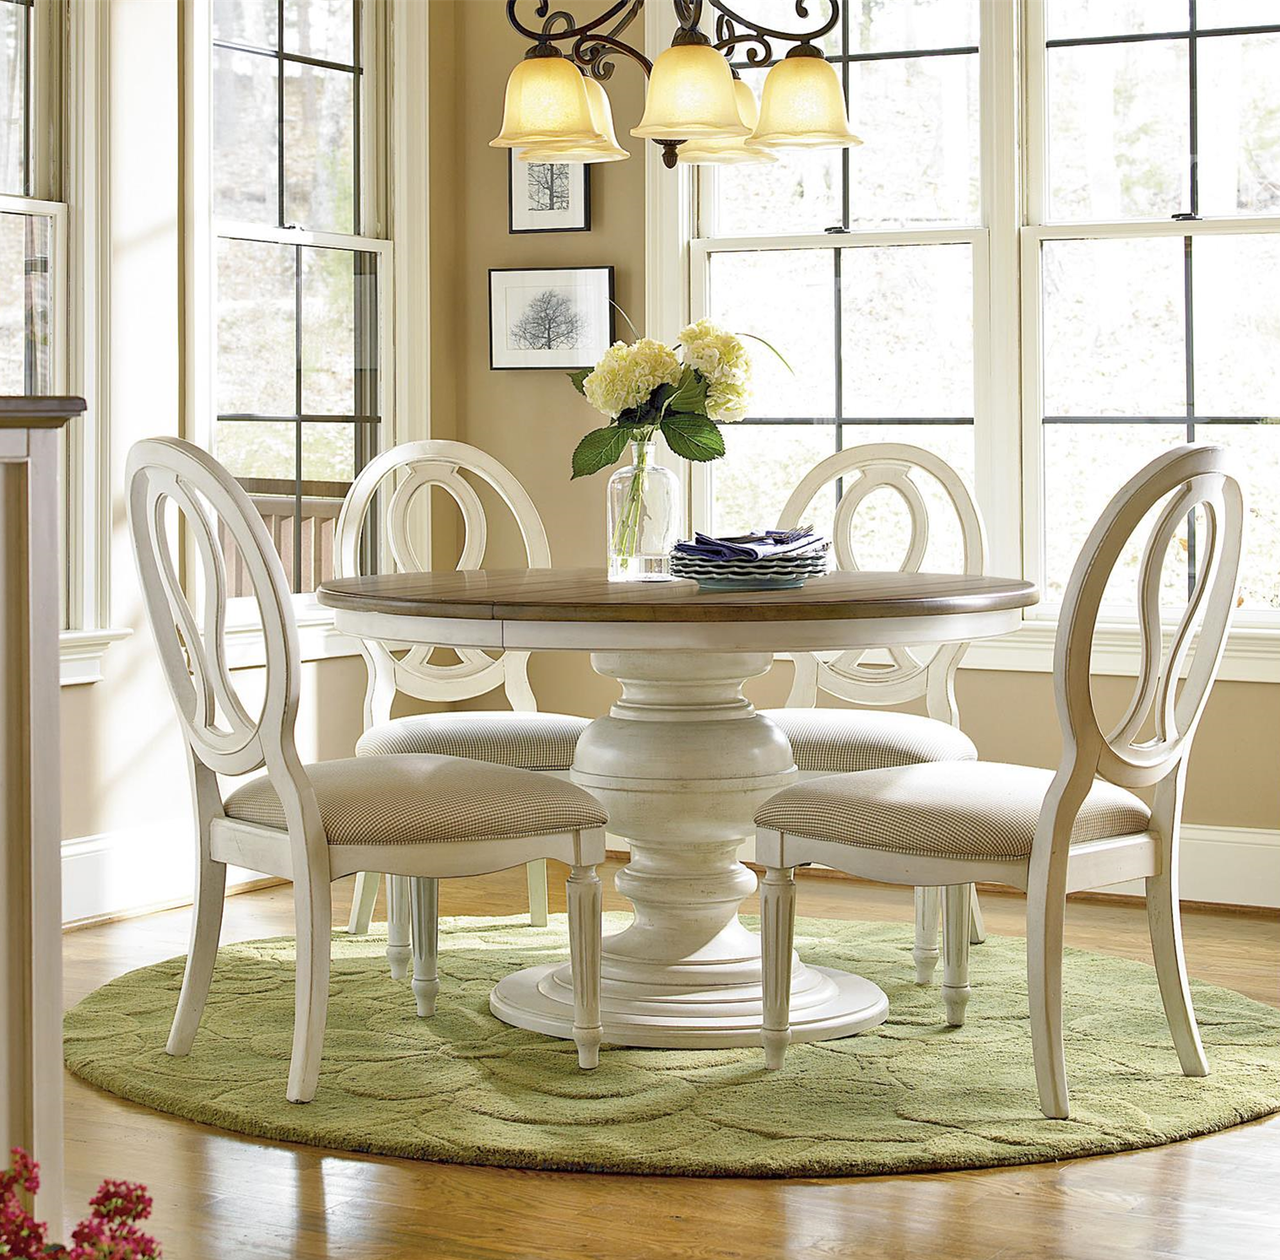 Country-Chic 5 Piece Round White Dining Table Set | Zin Home